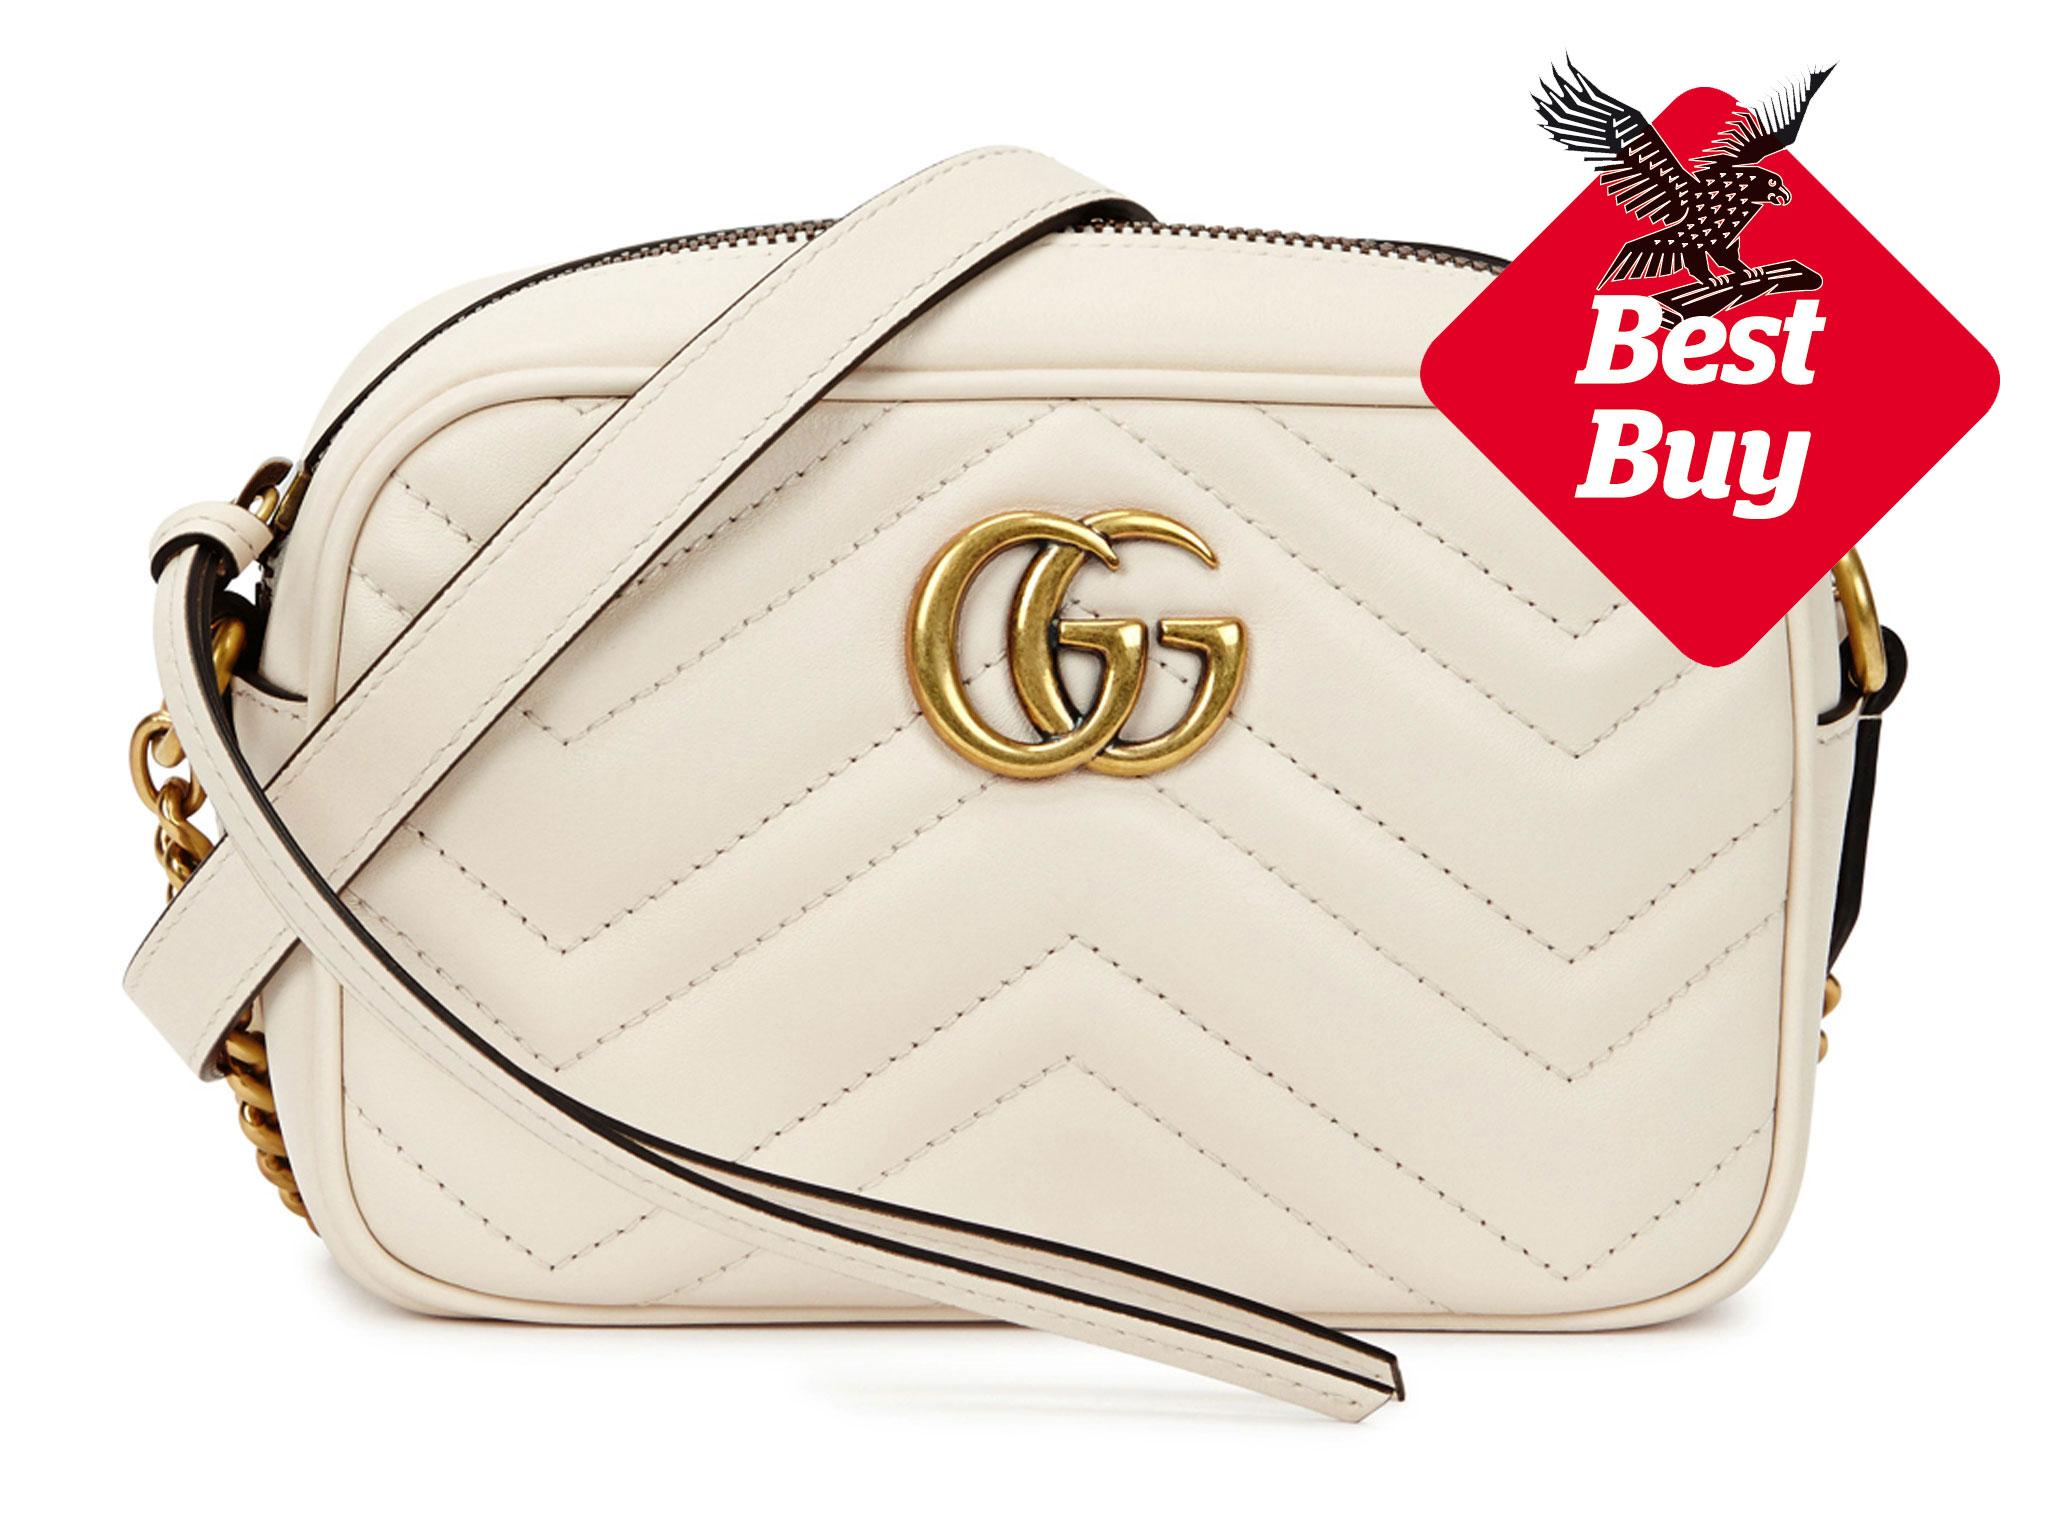 532f081de7f8 Gucci Marmont Mini Shoulder Bag  £640